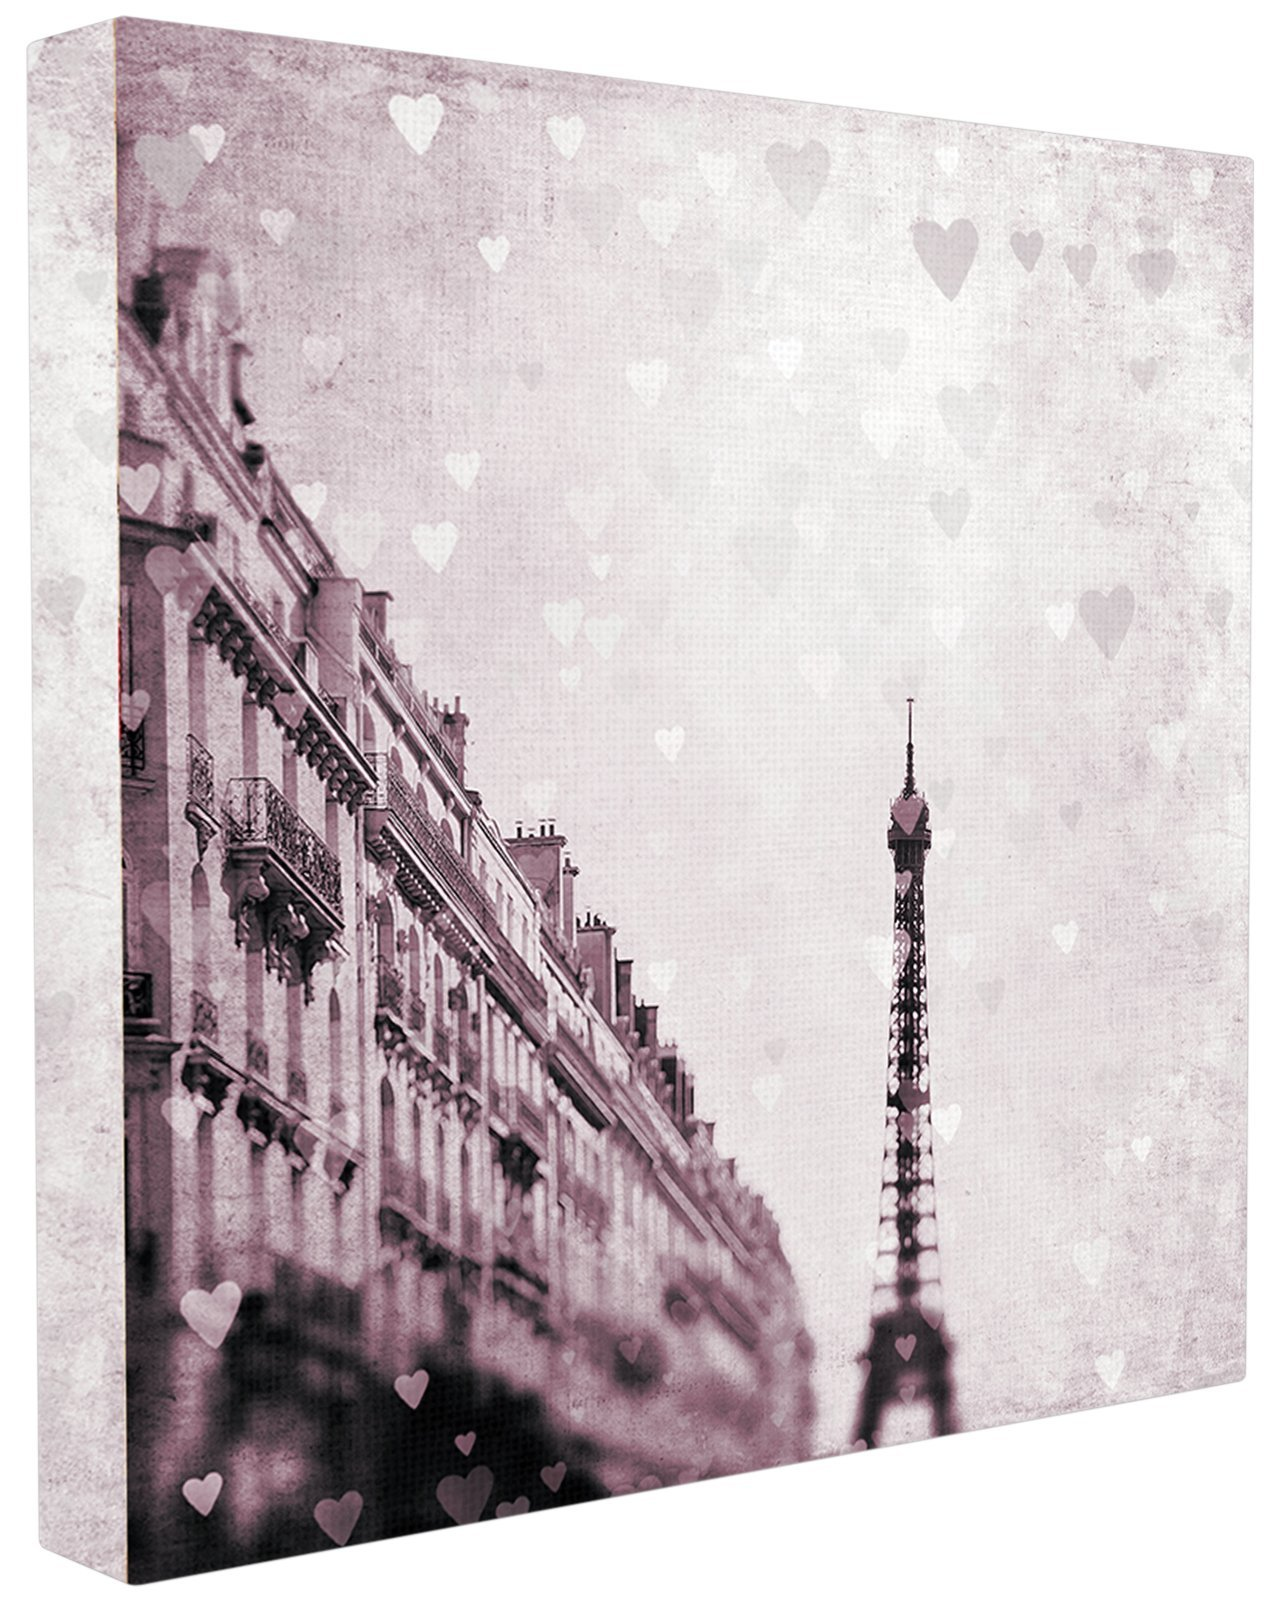 CDM product Stupell Home Décor Paris Heart Storm Stretched Canvas Wall Art, 17 x 1.5 x 17, Proudly Made in USA big image